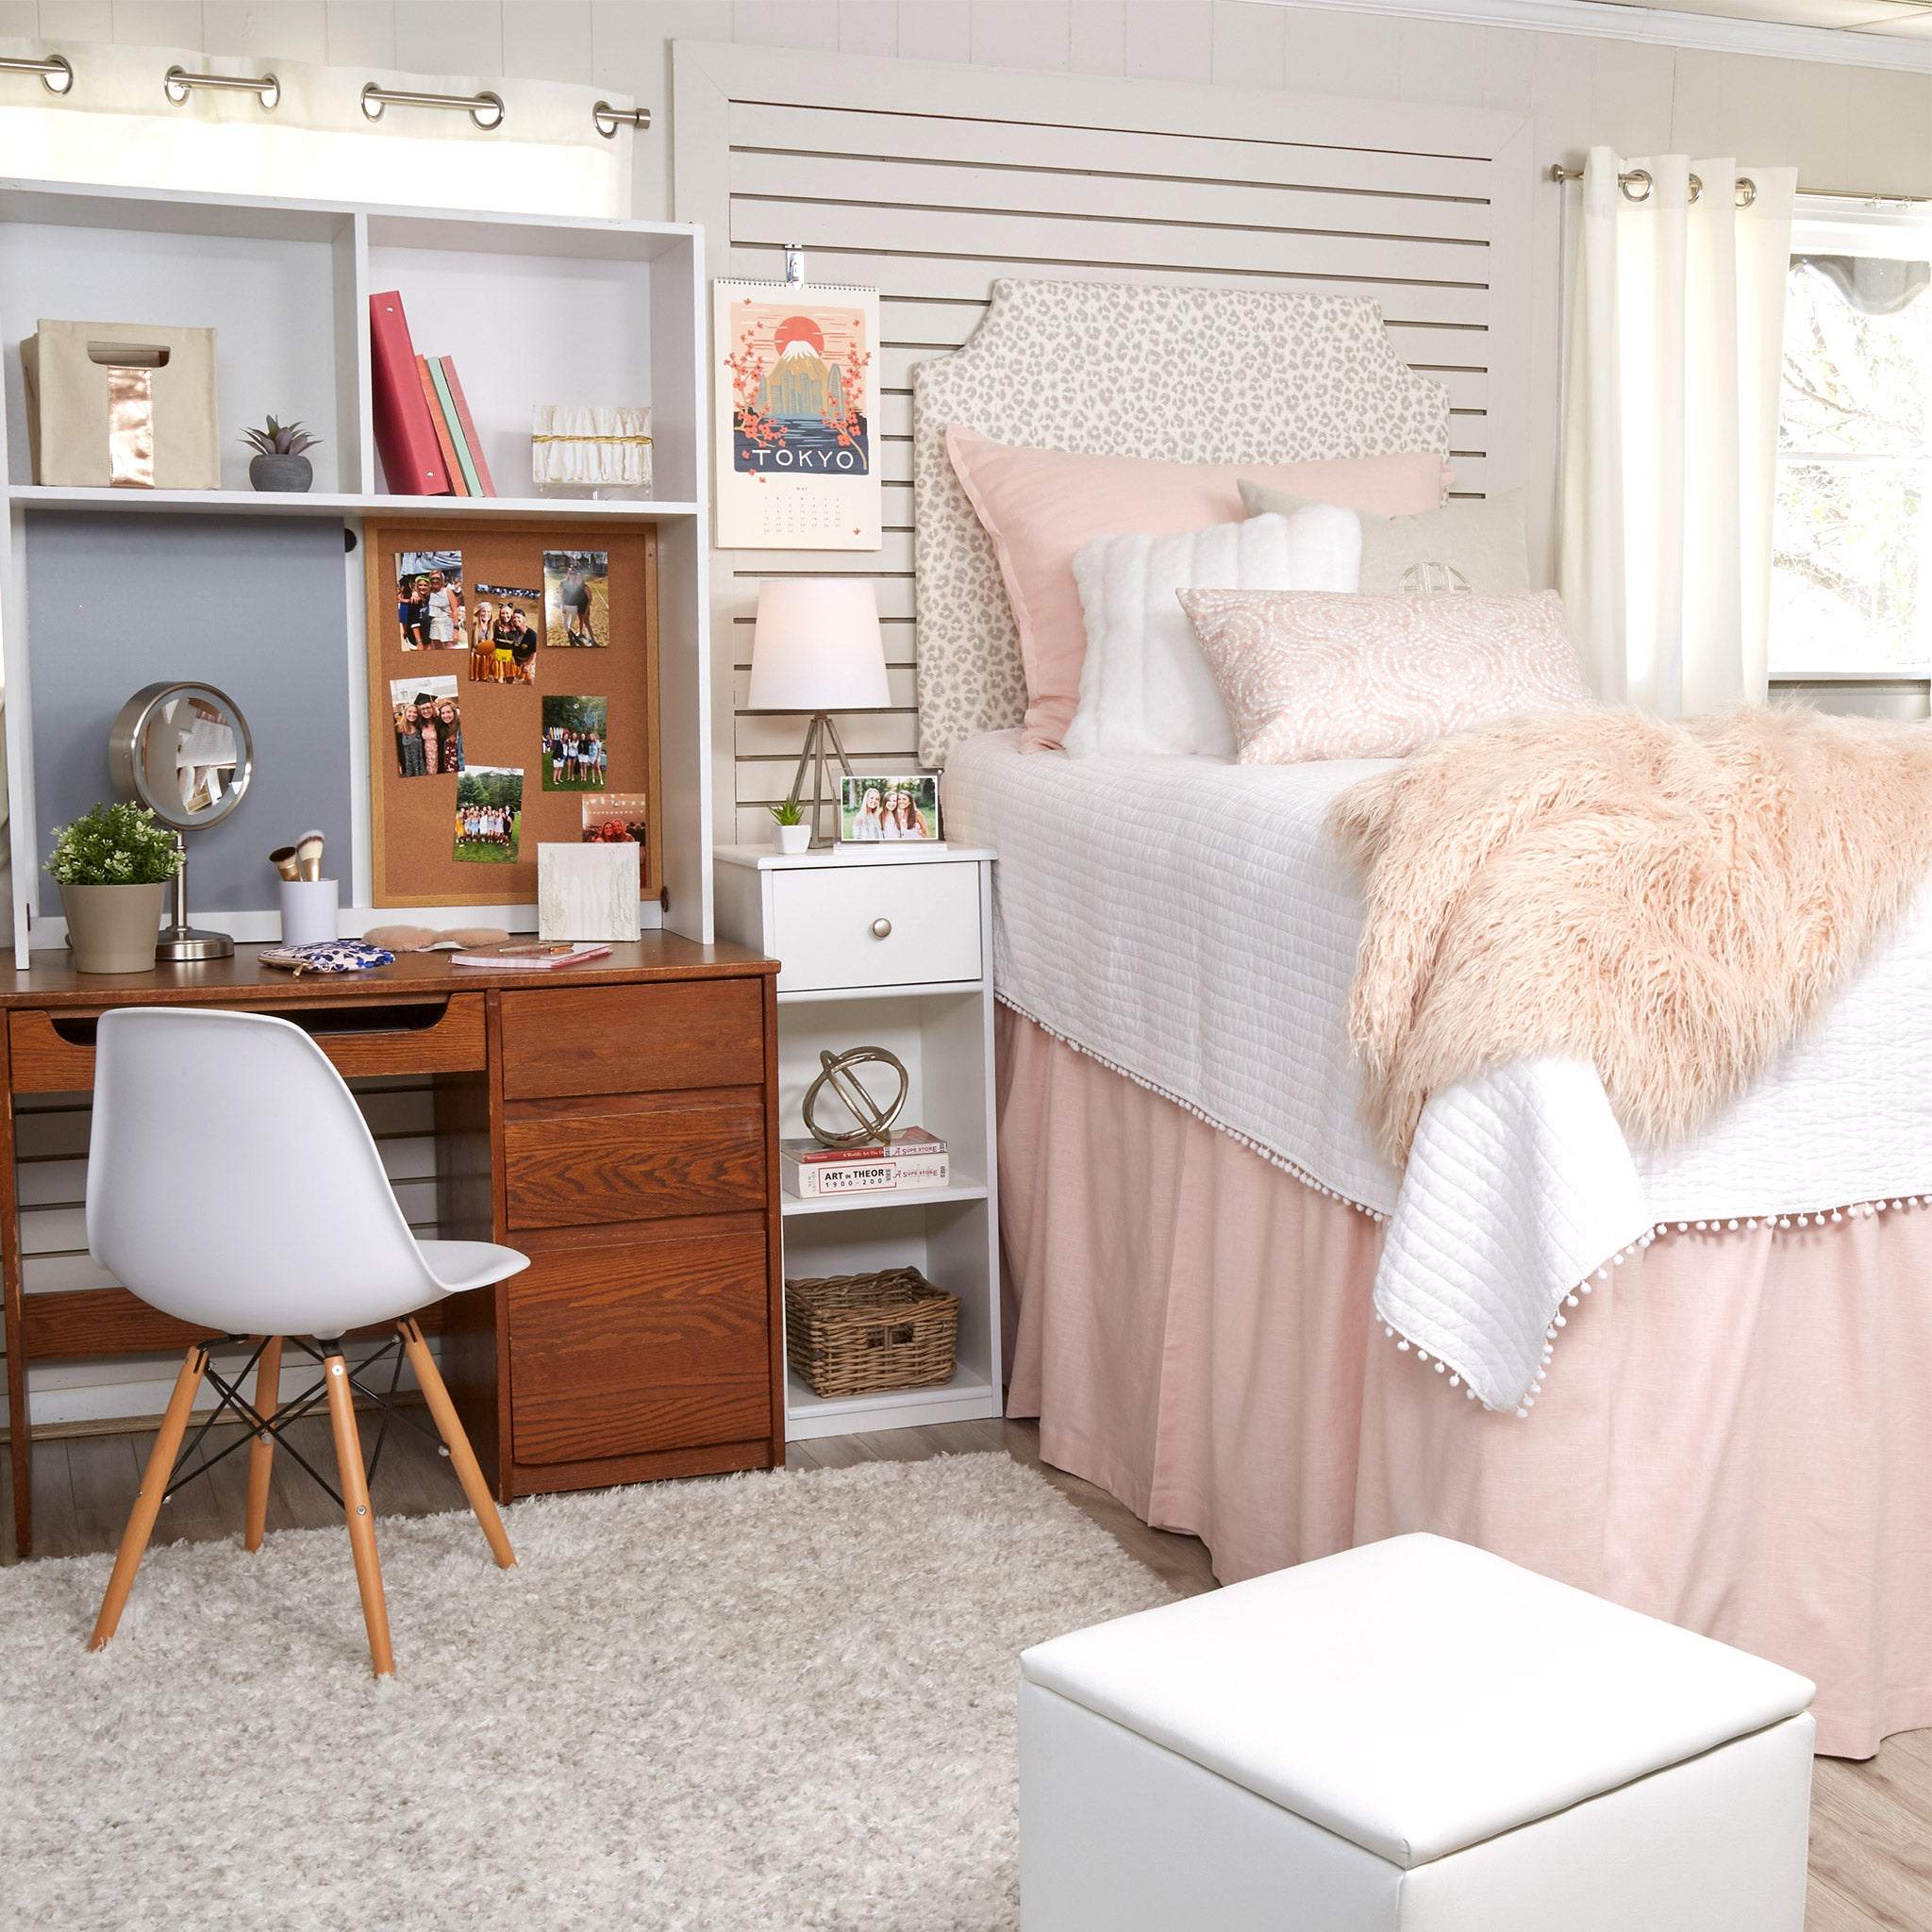 the dorm room dorm decor. Black Bedroom Furniture Sets. Home Design Ideas